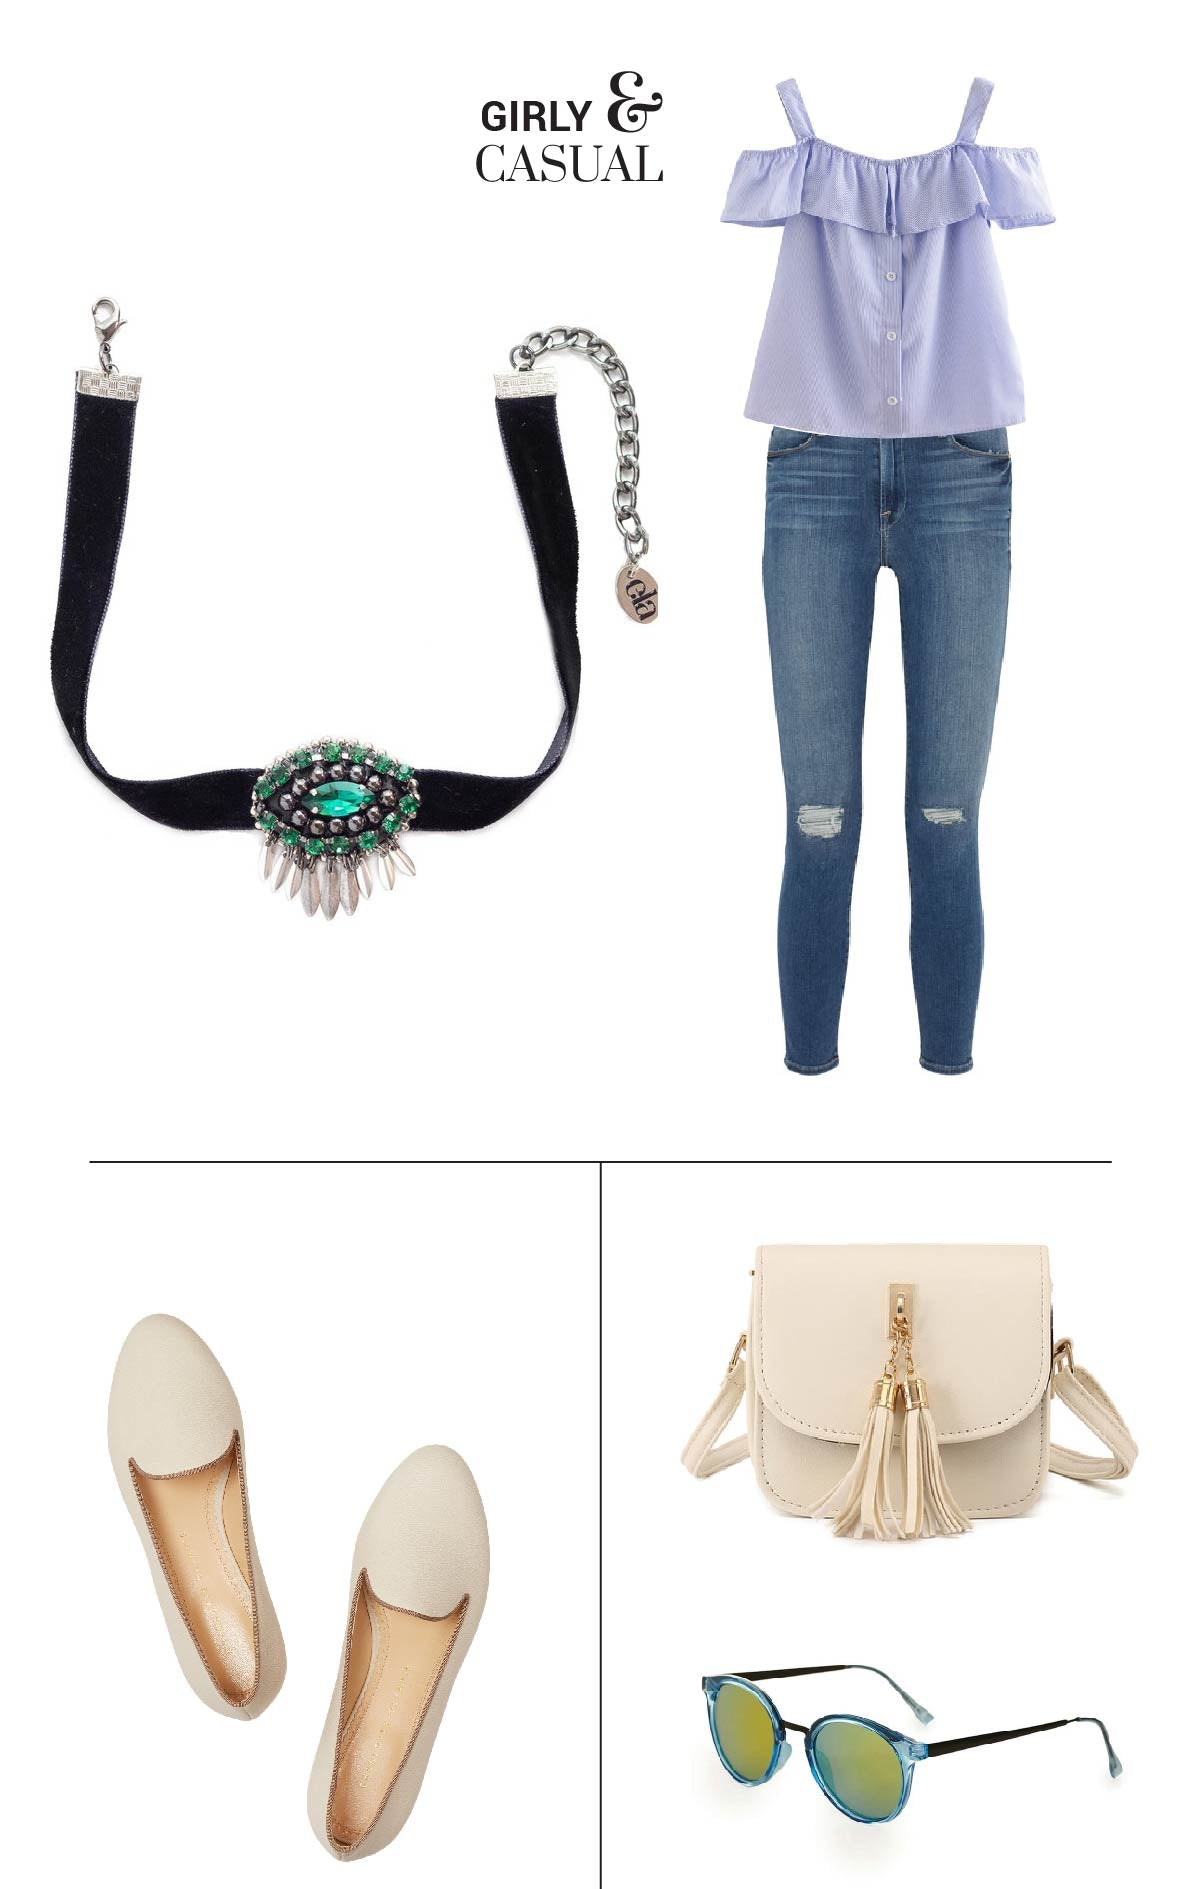 How to style a choker necklace - Combine this choker necklace with your outfit to match your girly and casual style!